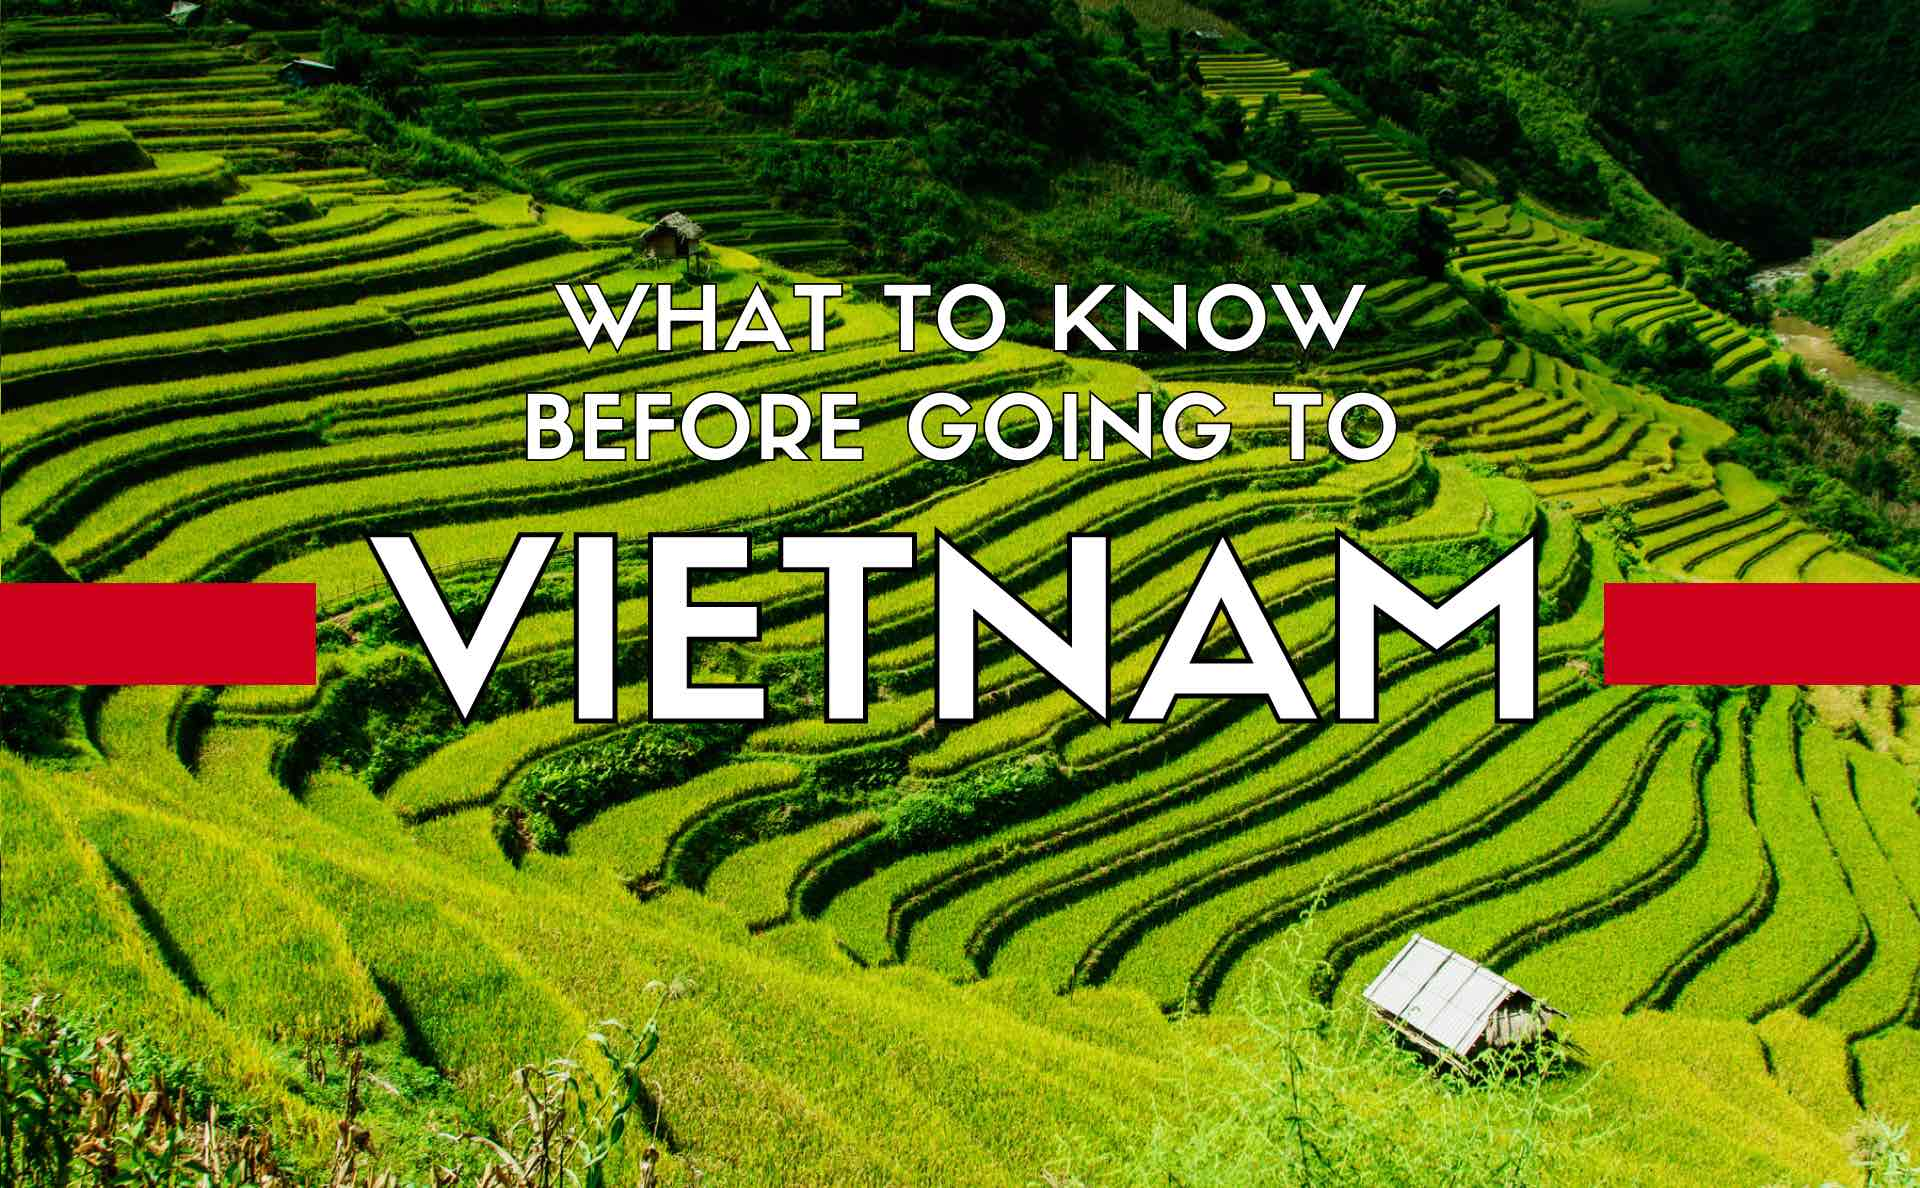 Vietnam Tips And Tricks: 26 Key Things To Know Before Your Trip